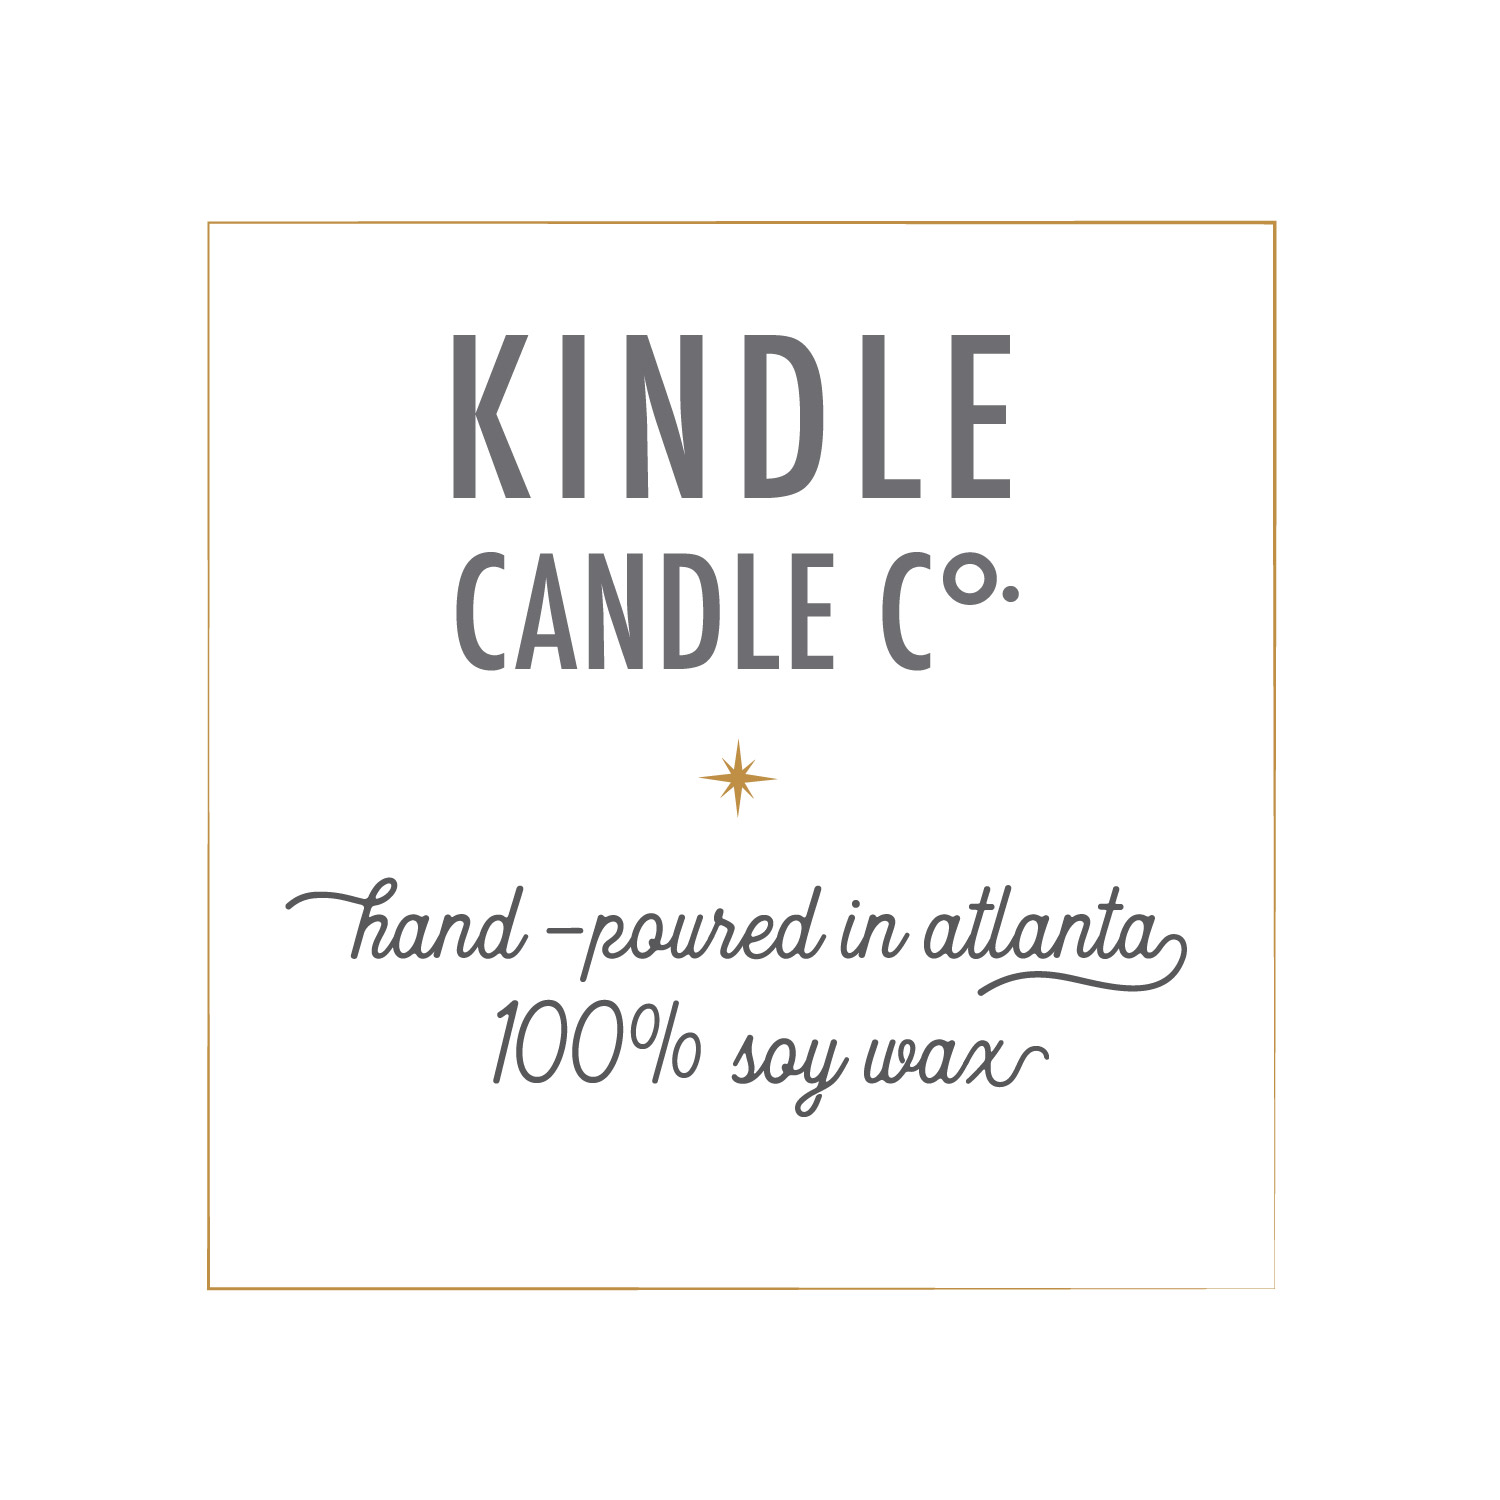 Kindle Candle Co.